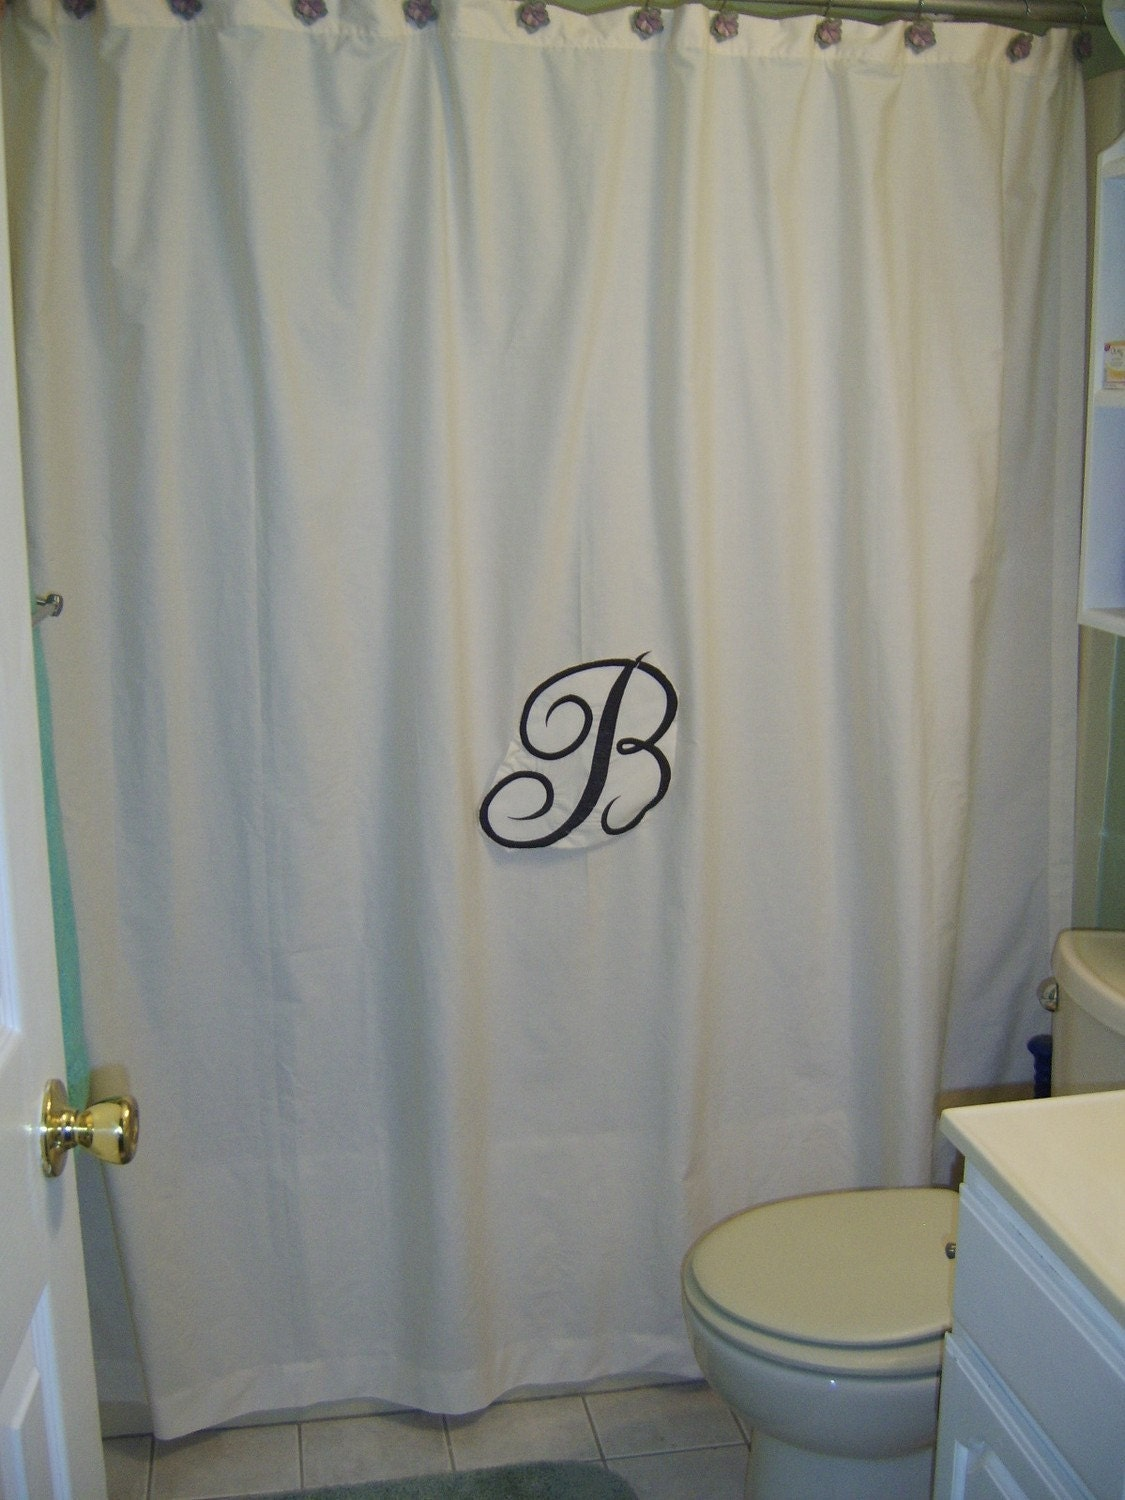 Personalized Shower Curtains Personalized Embroidered Shower Curtain Avaliable In White Or